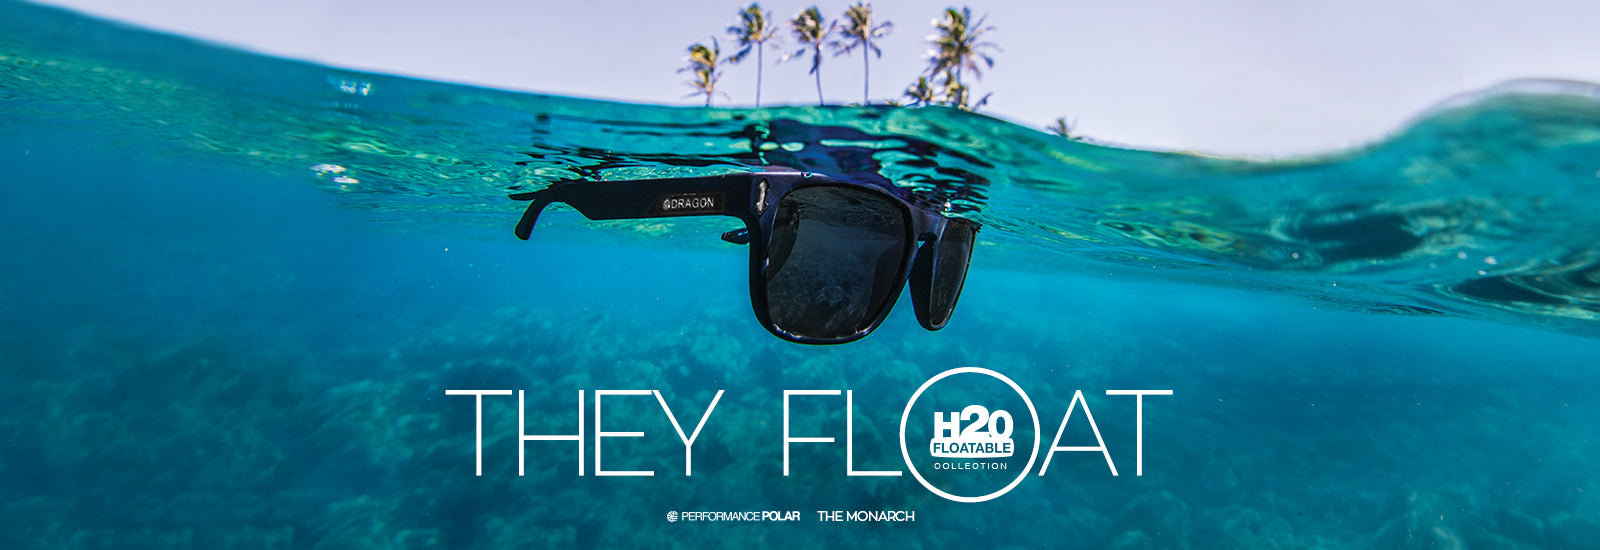 013fa592e3 THEY FLOAT - The dream product for watermen and women who enjoy an active  lifestyle